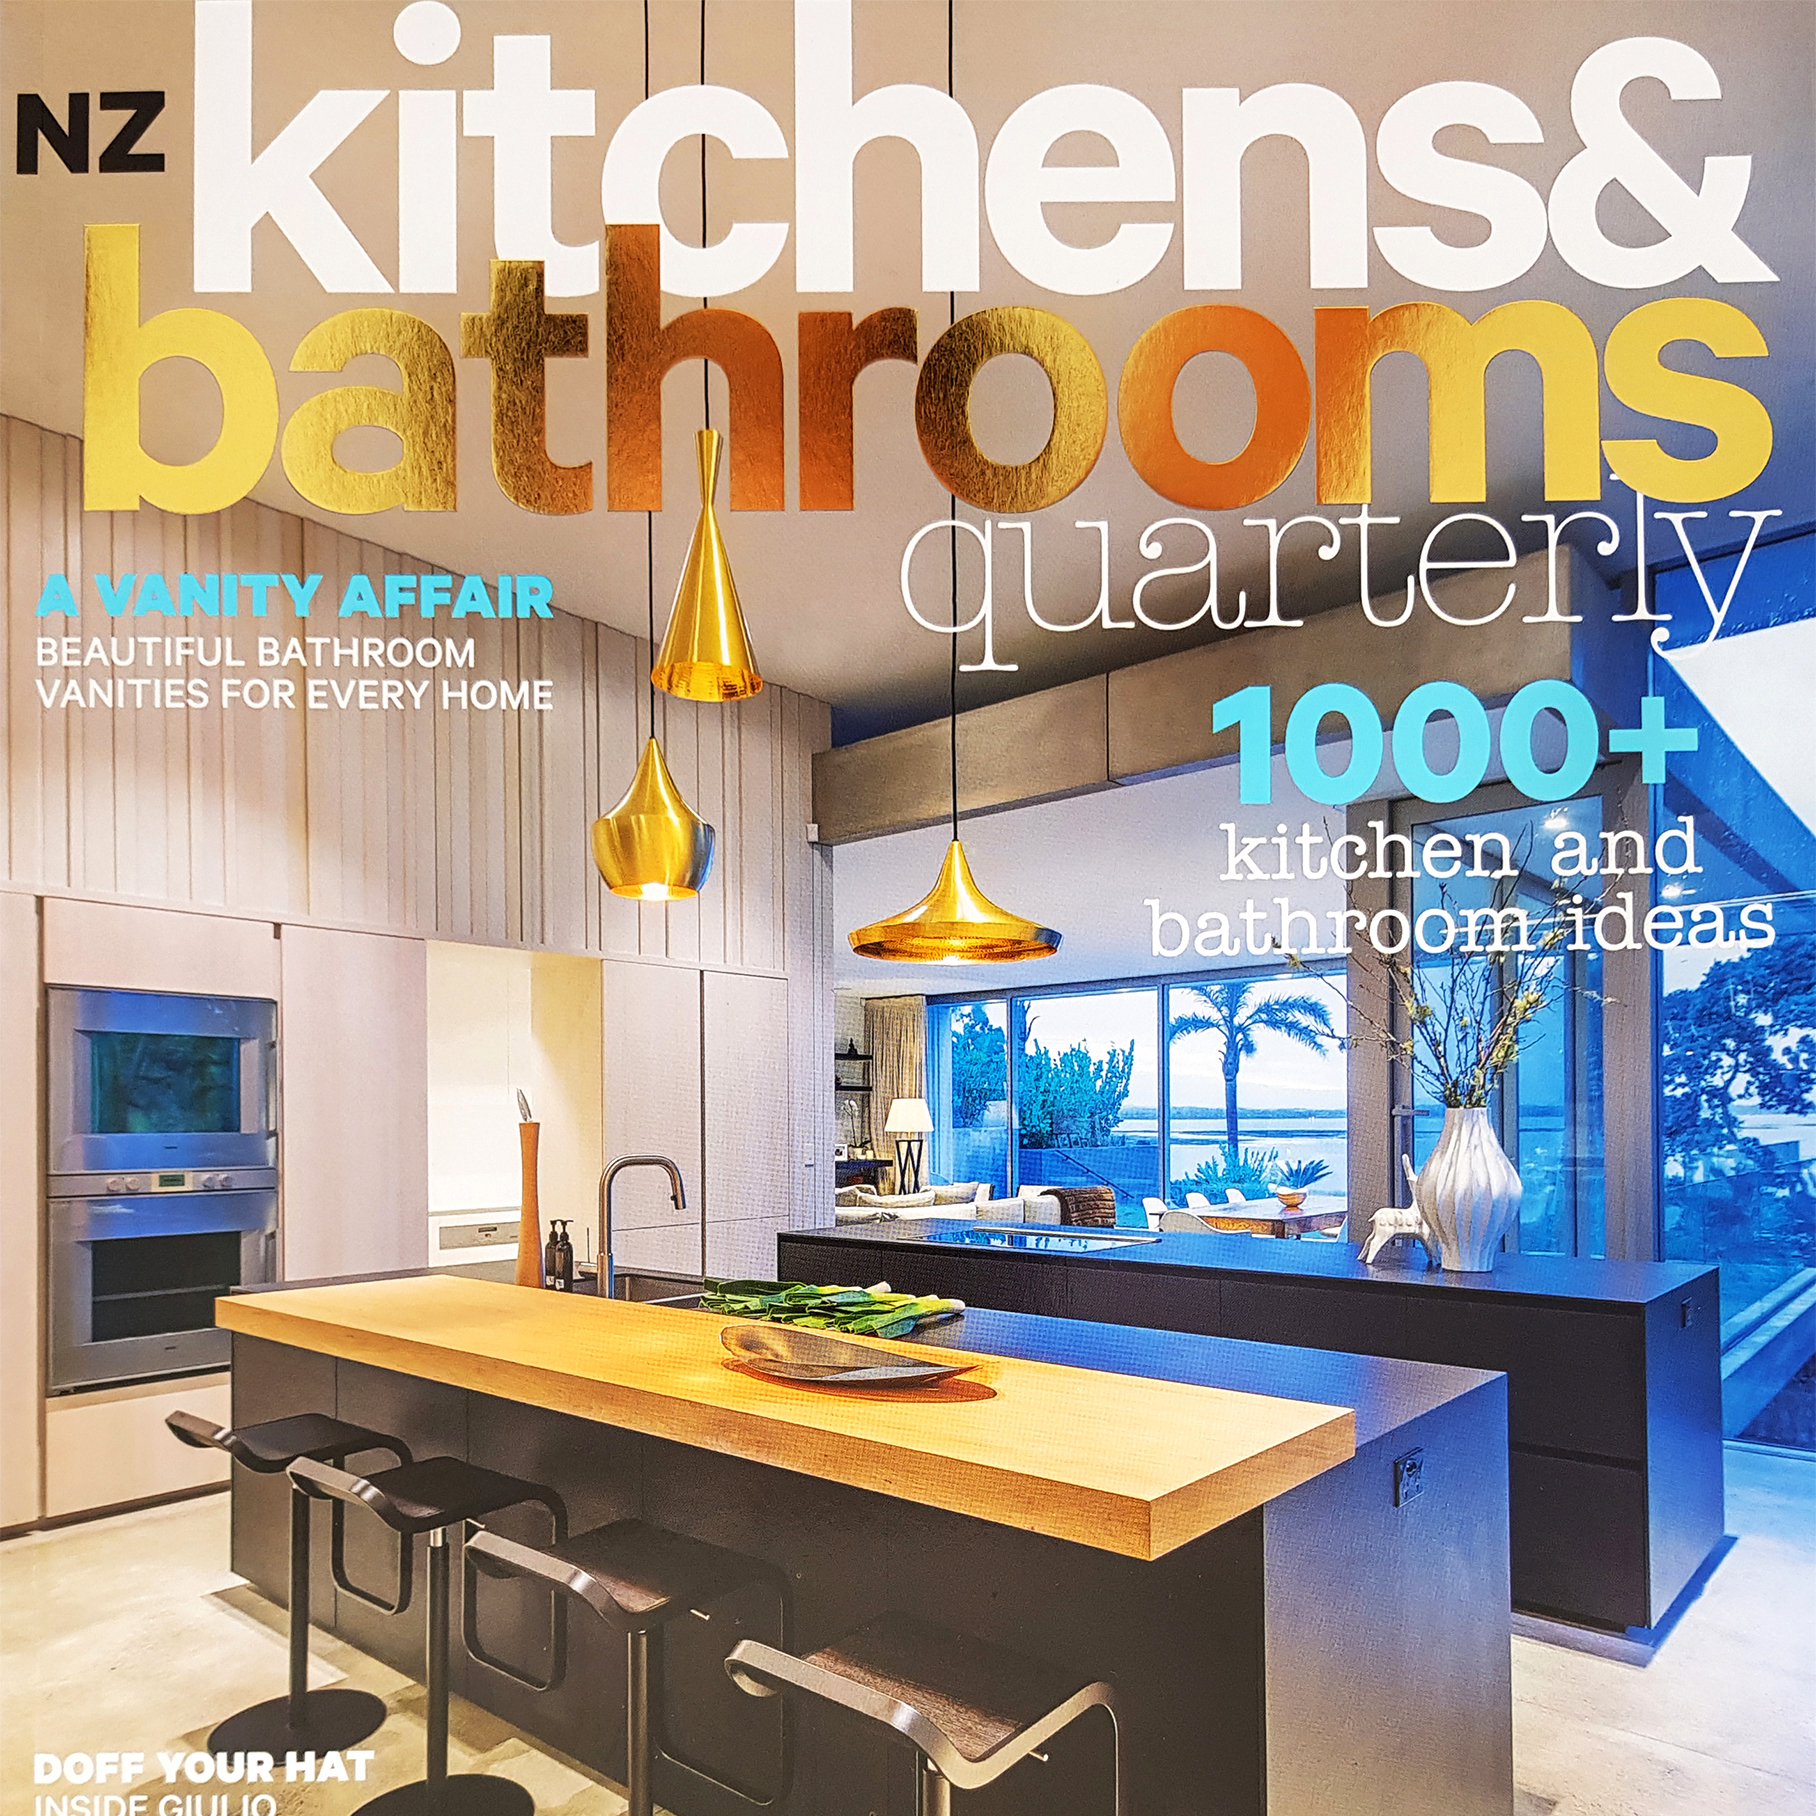 Kirsten Ford Design features in the NZ Kitchens & Bathrooms Quarterly edition. Click to read more…